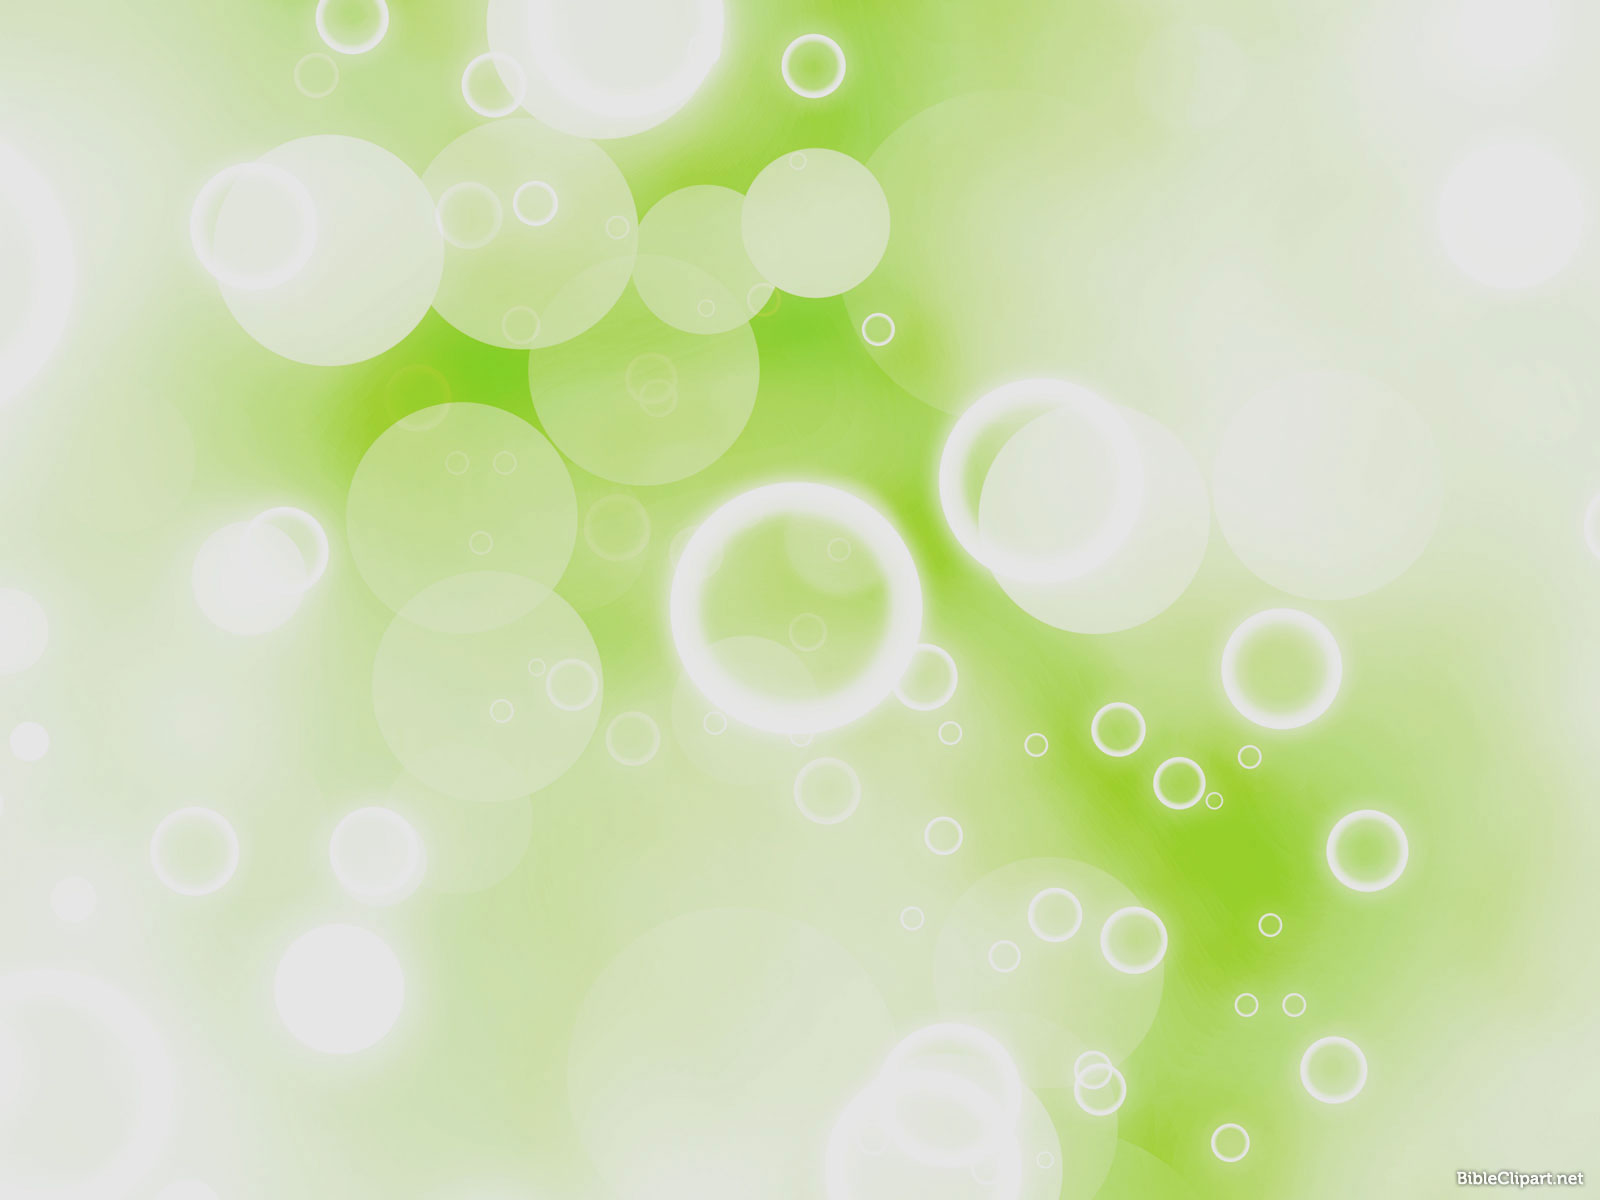 Professional green background images